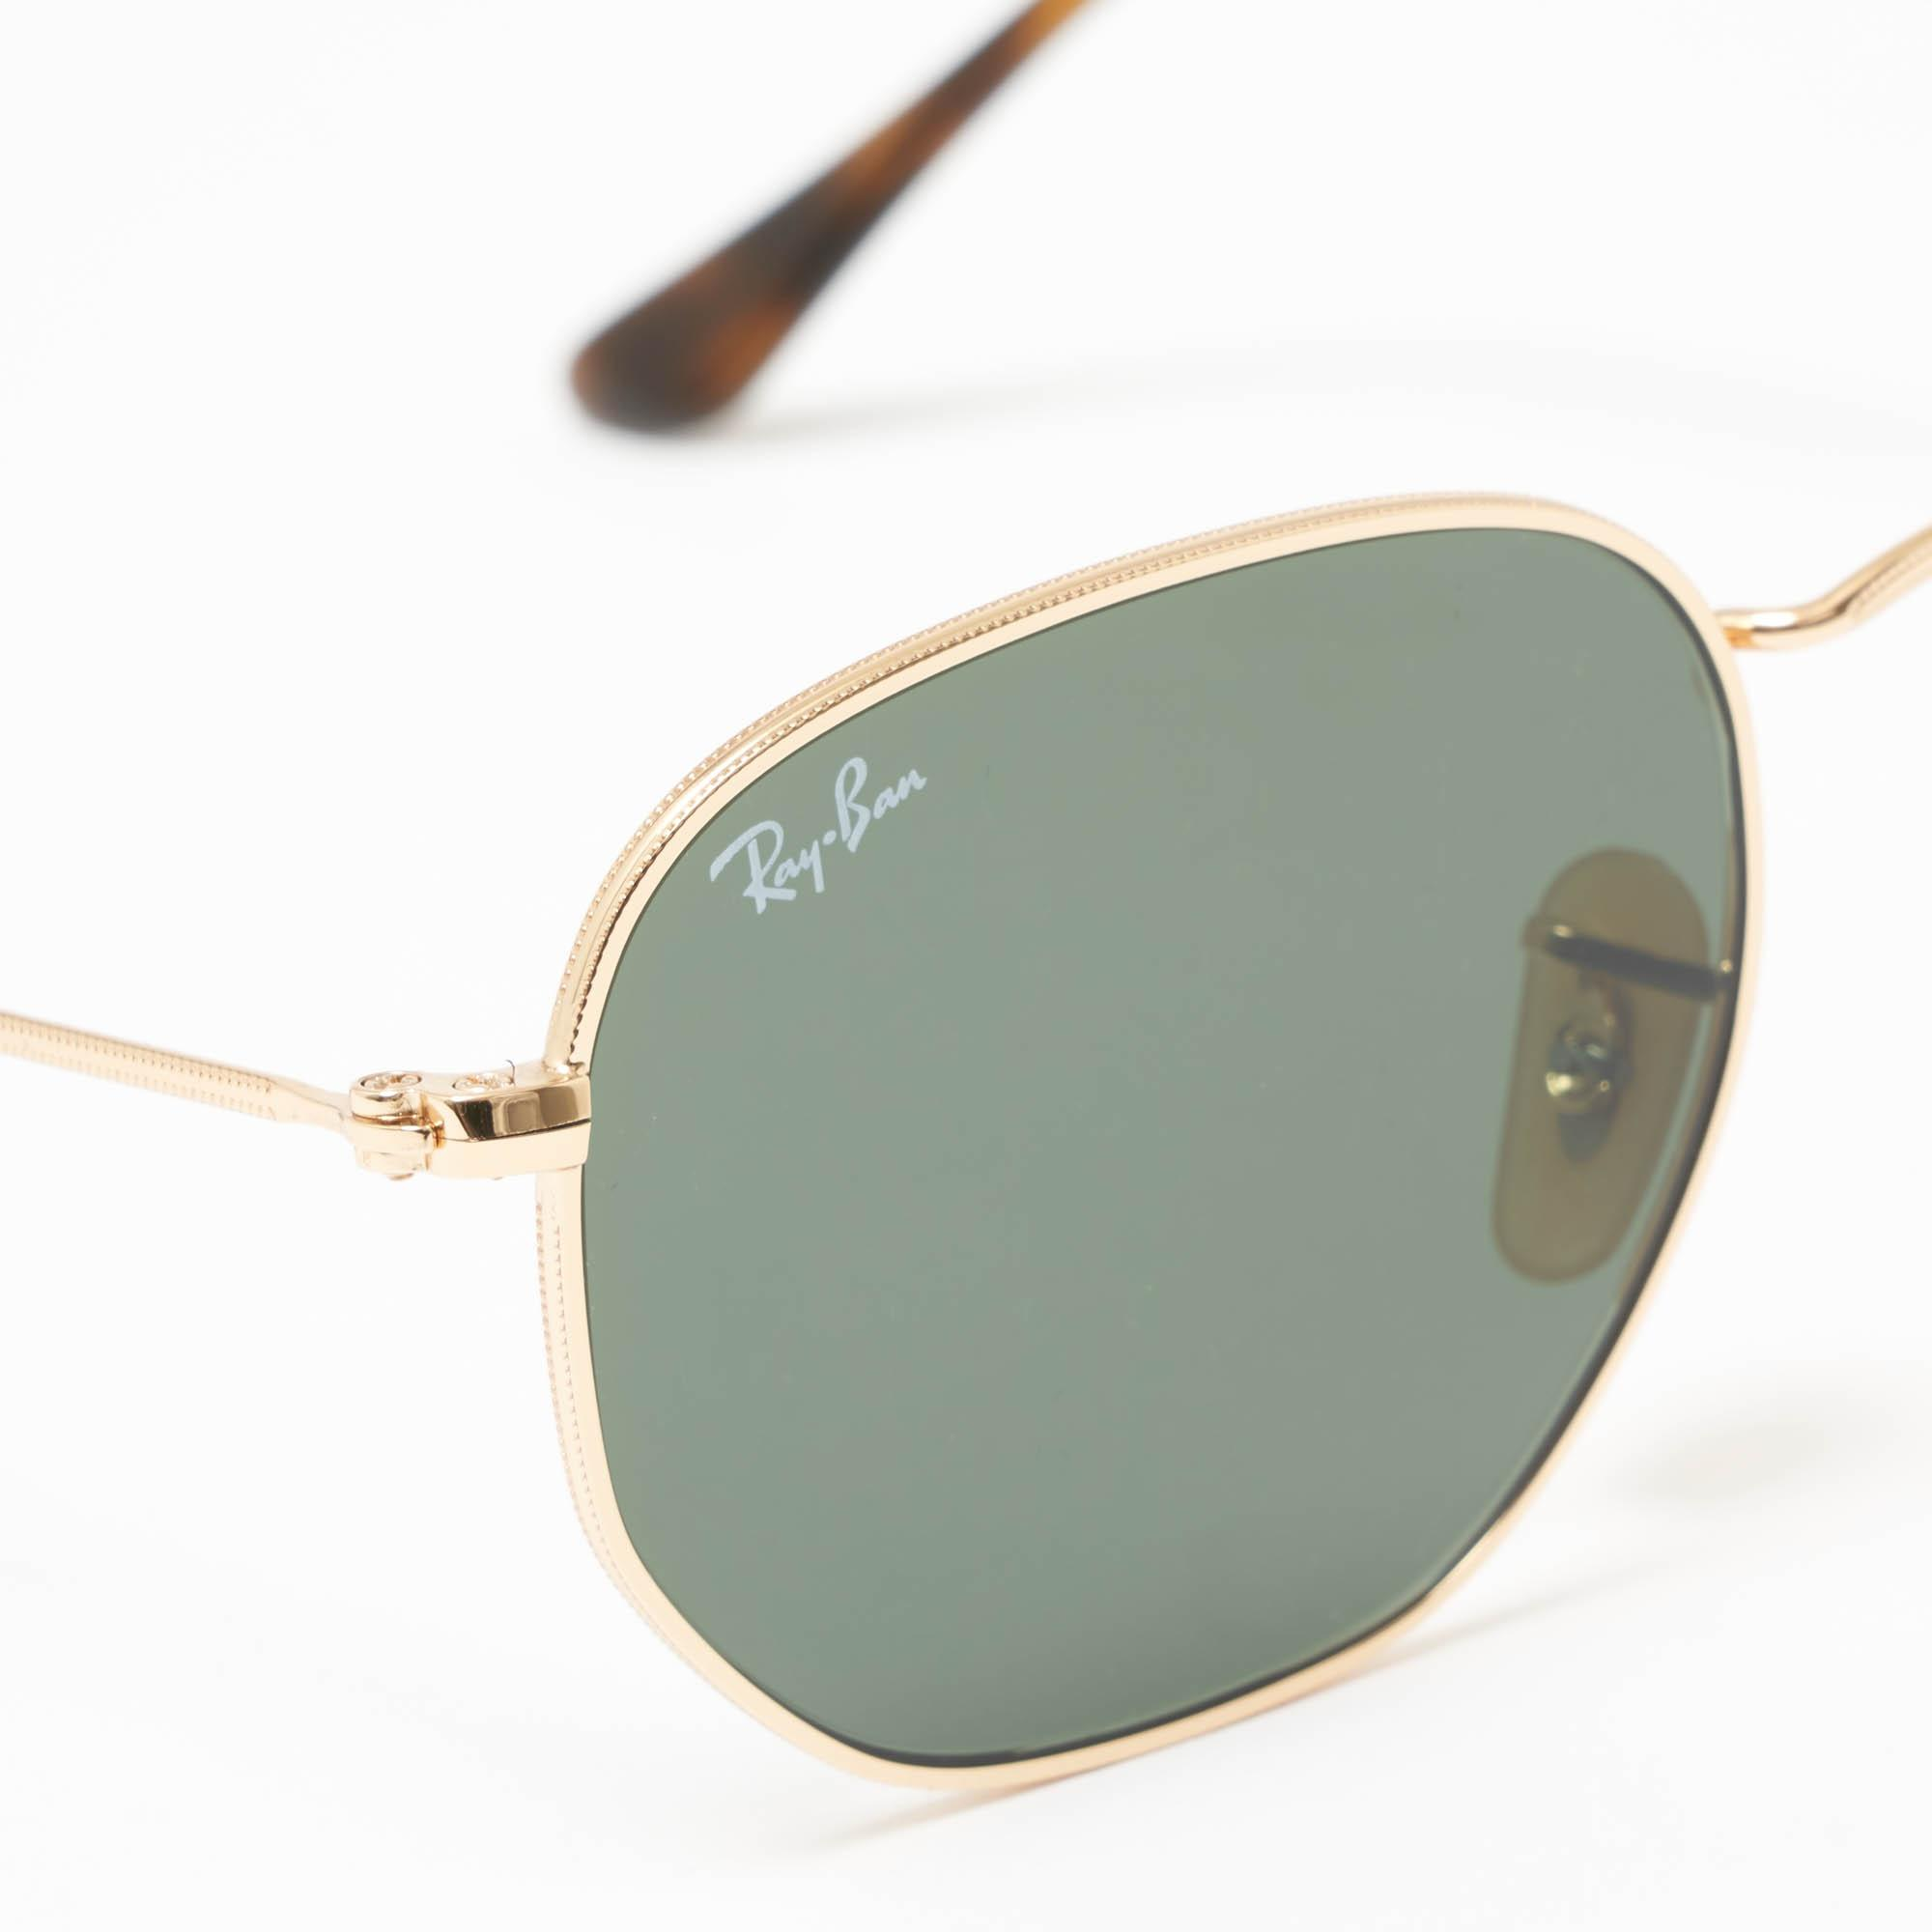 022cc06574 Ray-Ban - Metallic Gold Hexagonal Flat Lens Sunglasses - Green Classic  G-15. View fullscreen